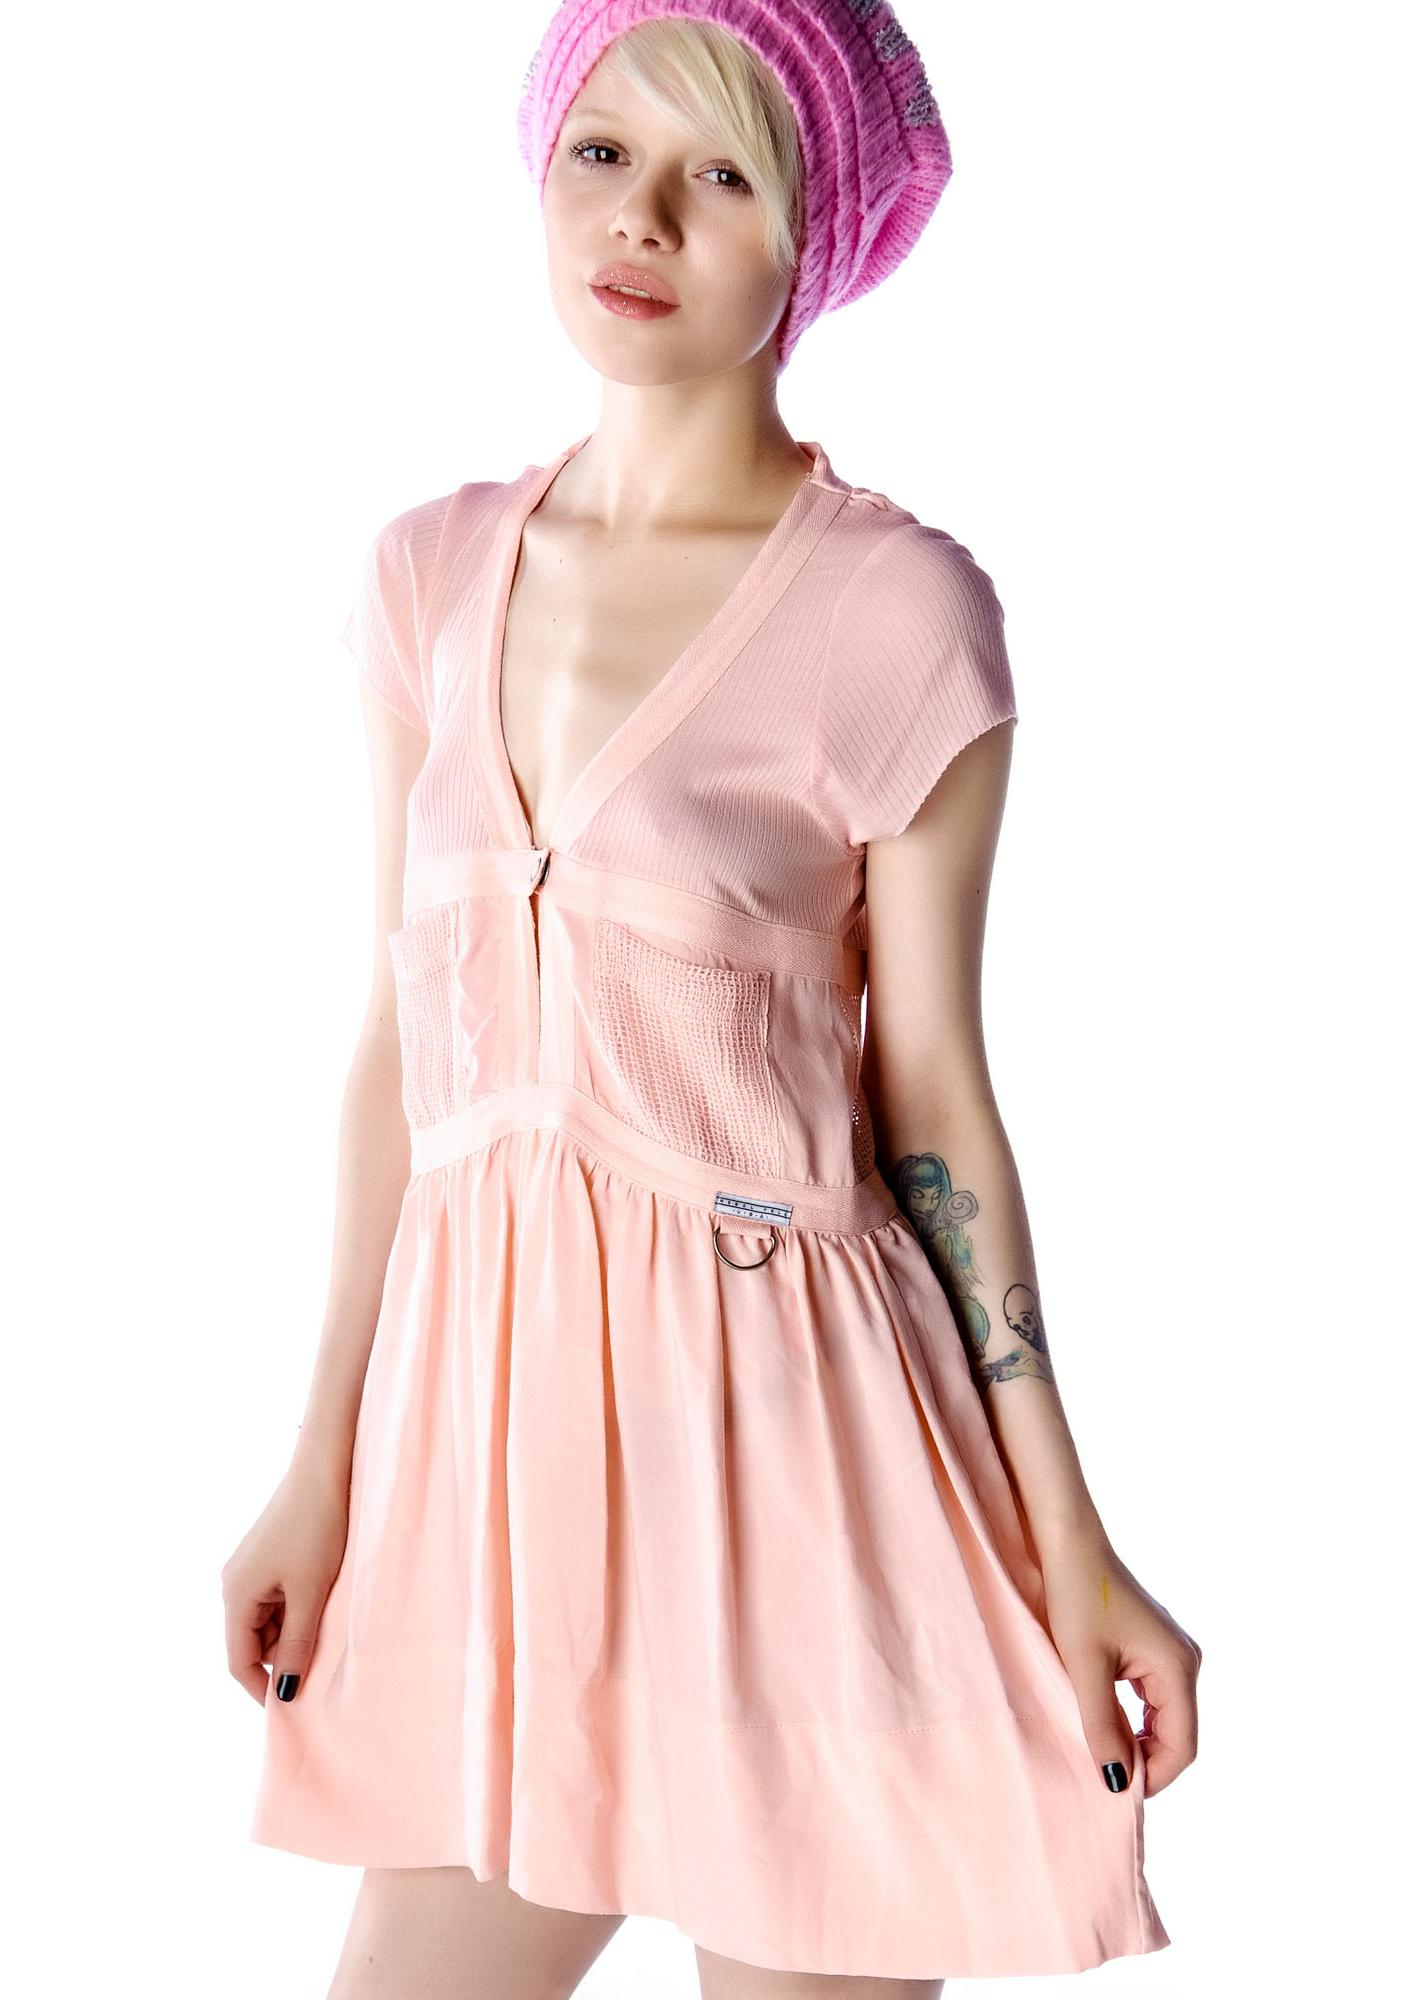 Rebel Yell RY Darling Dress